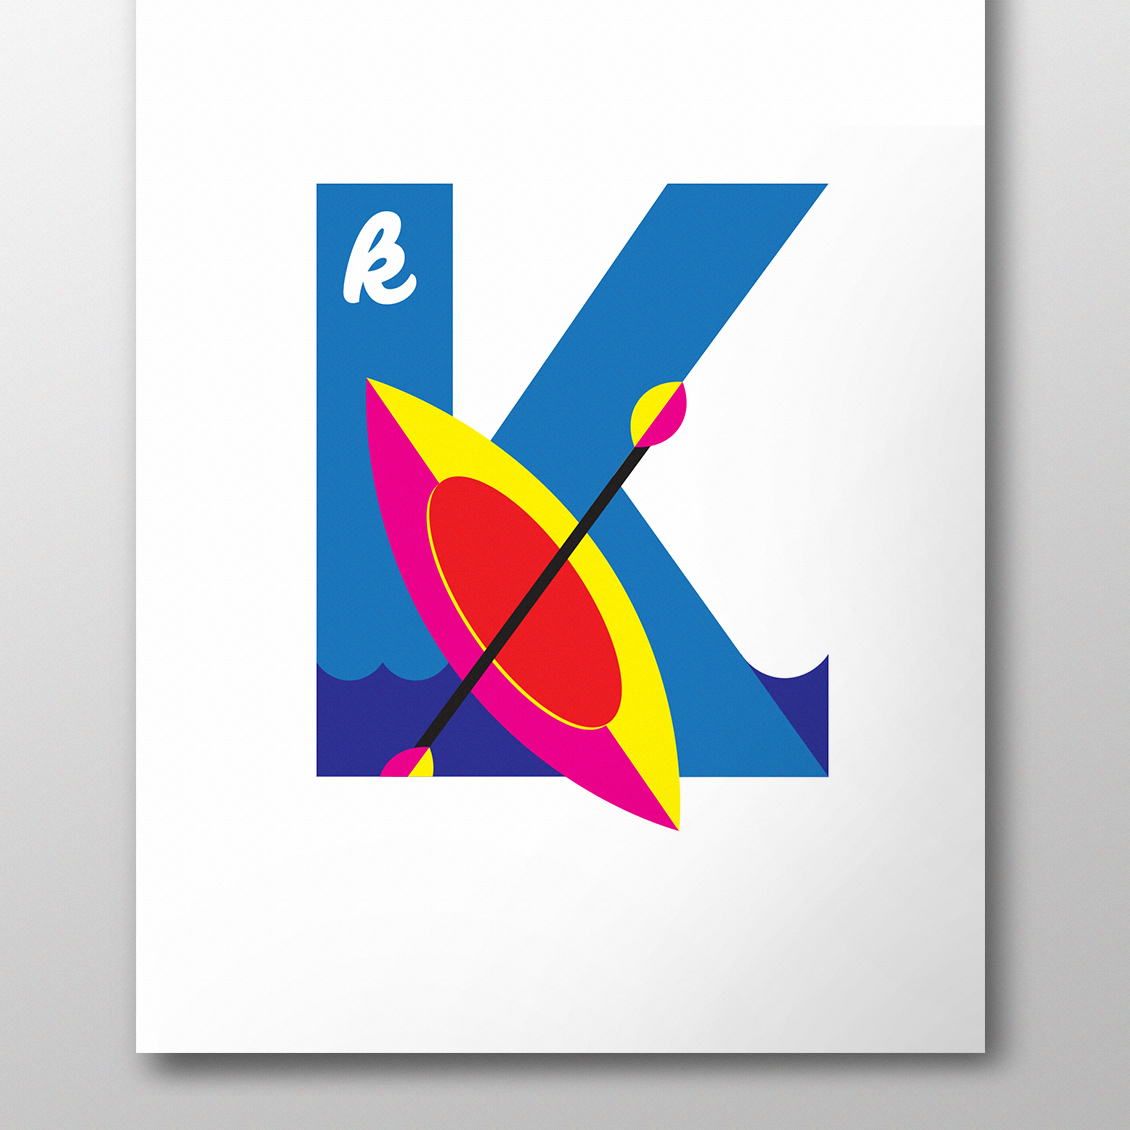 alphablot alphabet illustration kayak letter k